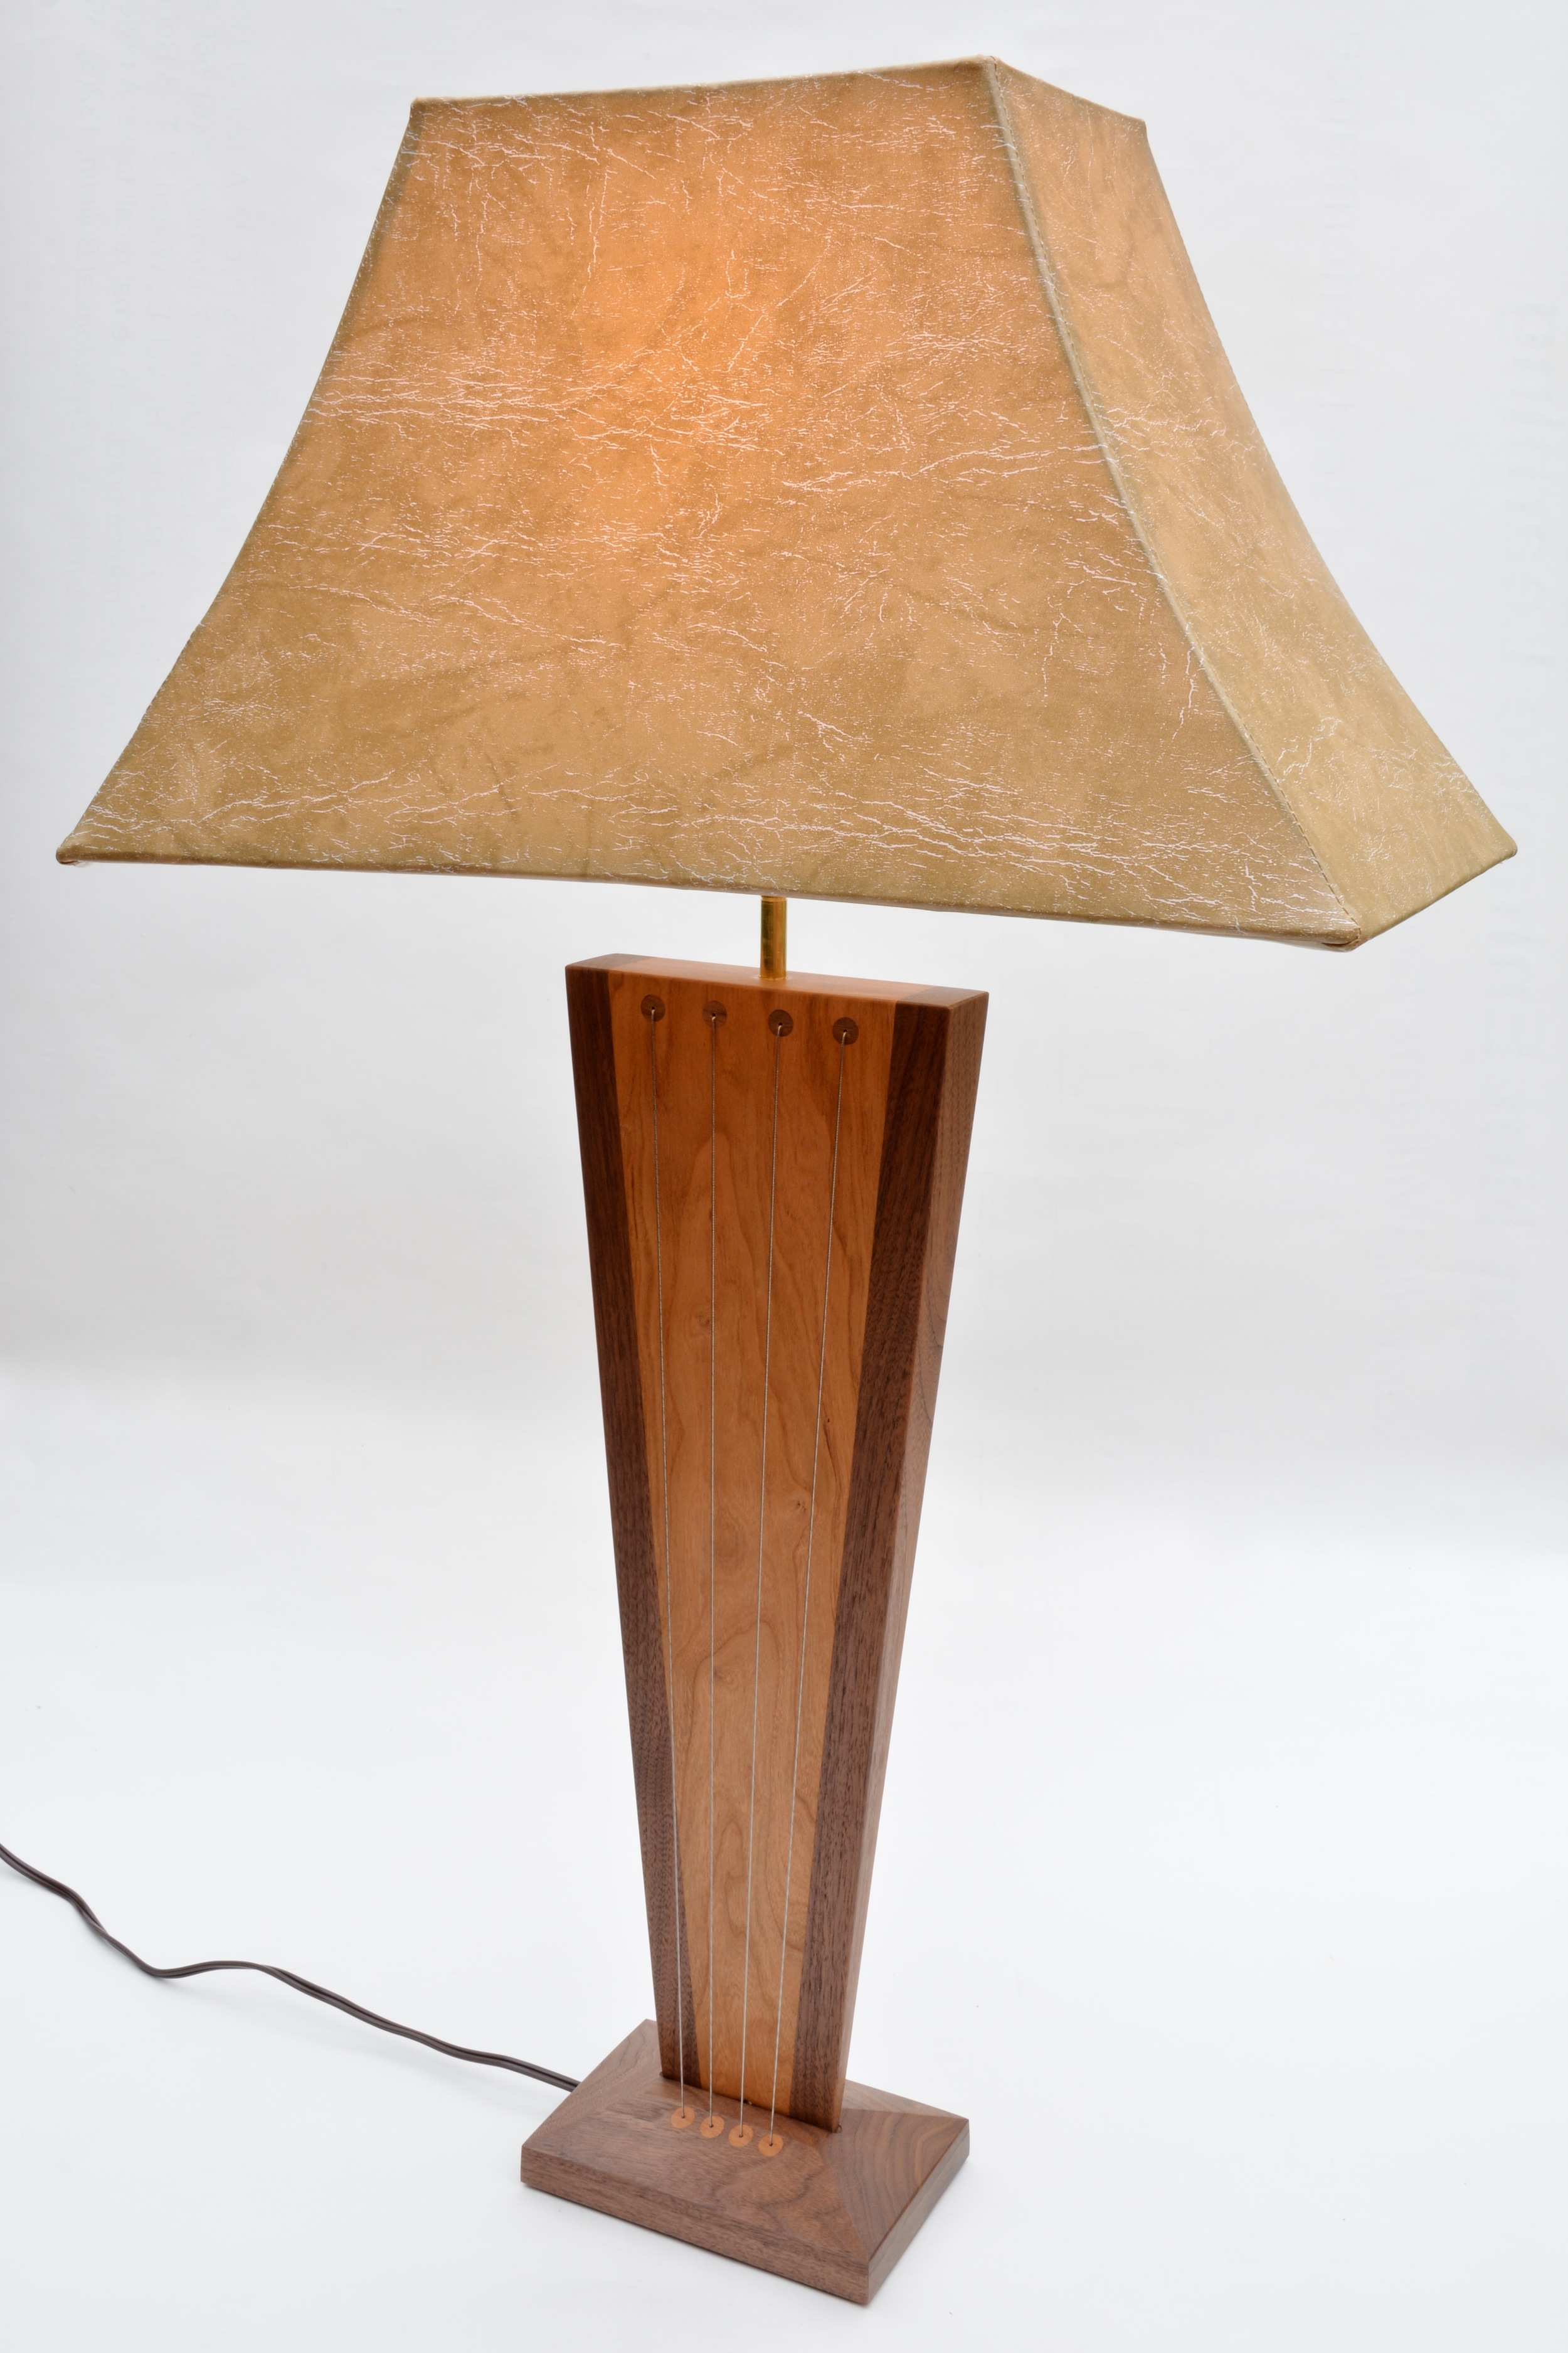 Balance Table Lamp by Robby Cuthbert